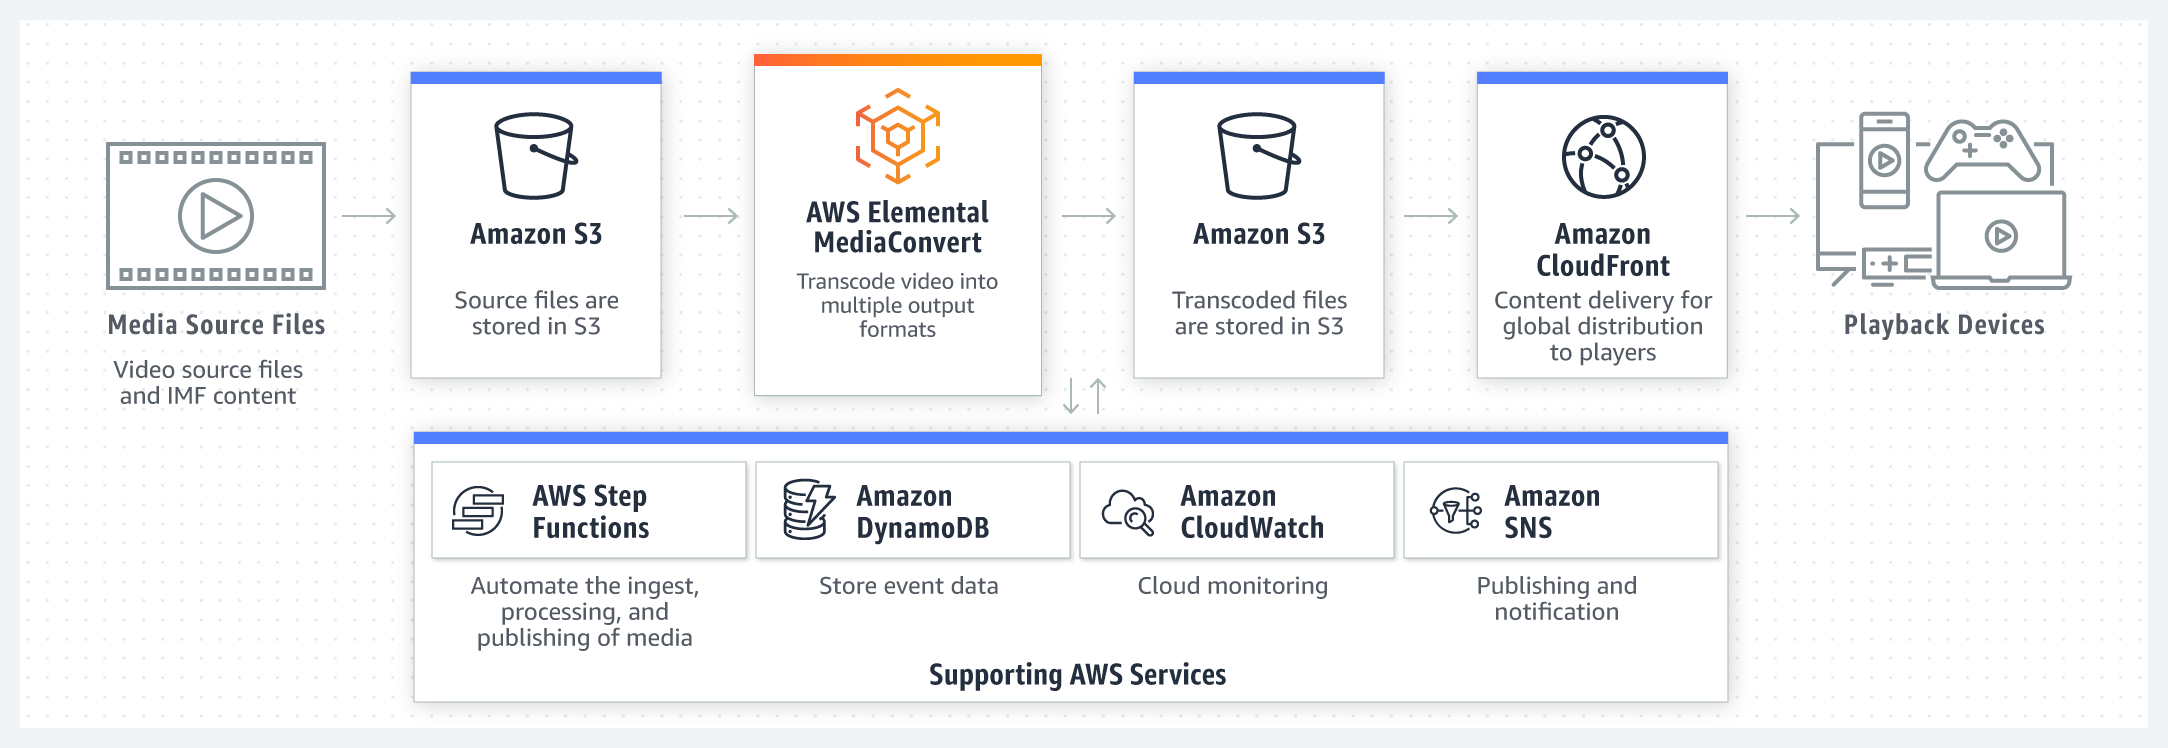 product-page-diagram_AWS_Elemental_r06_VOD_@2x